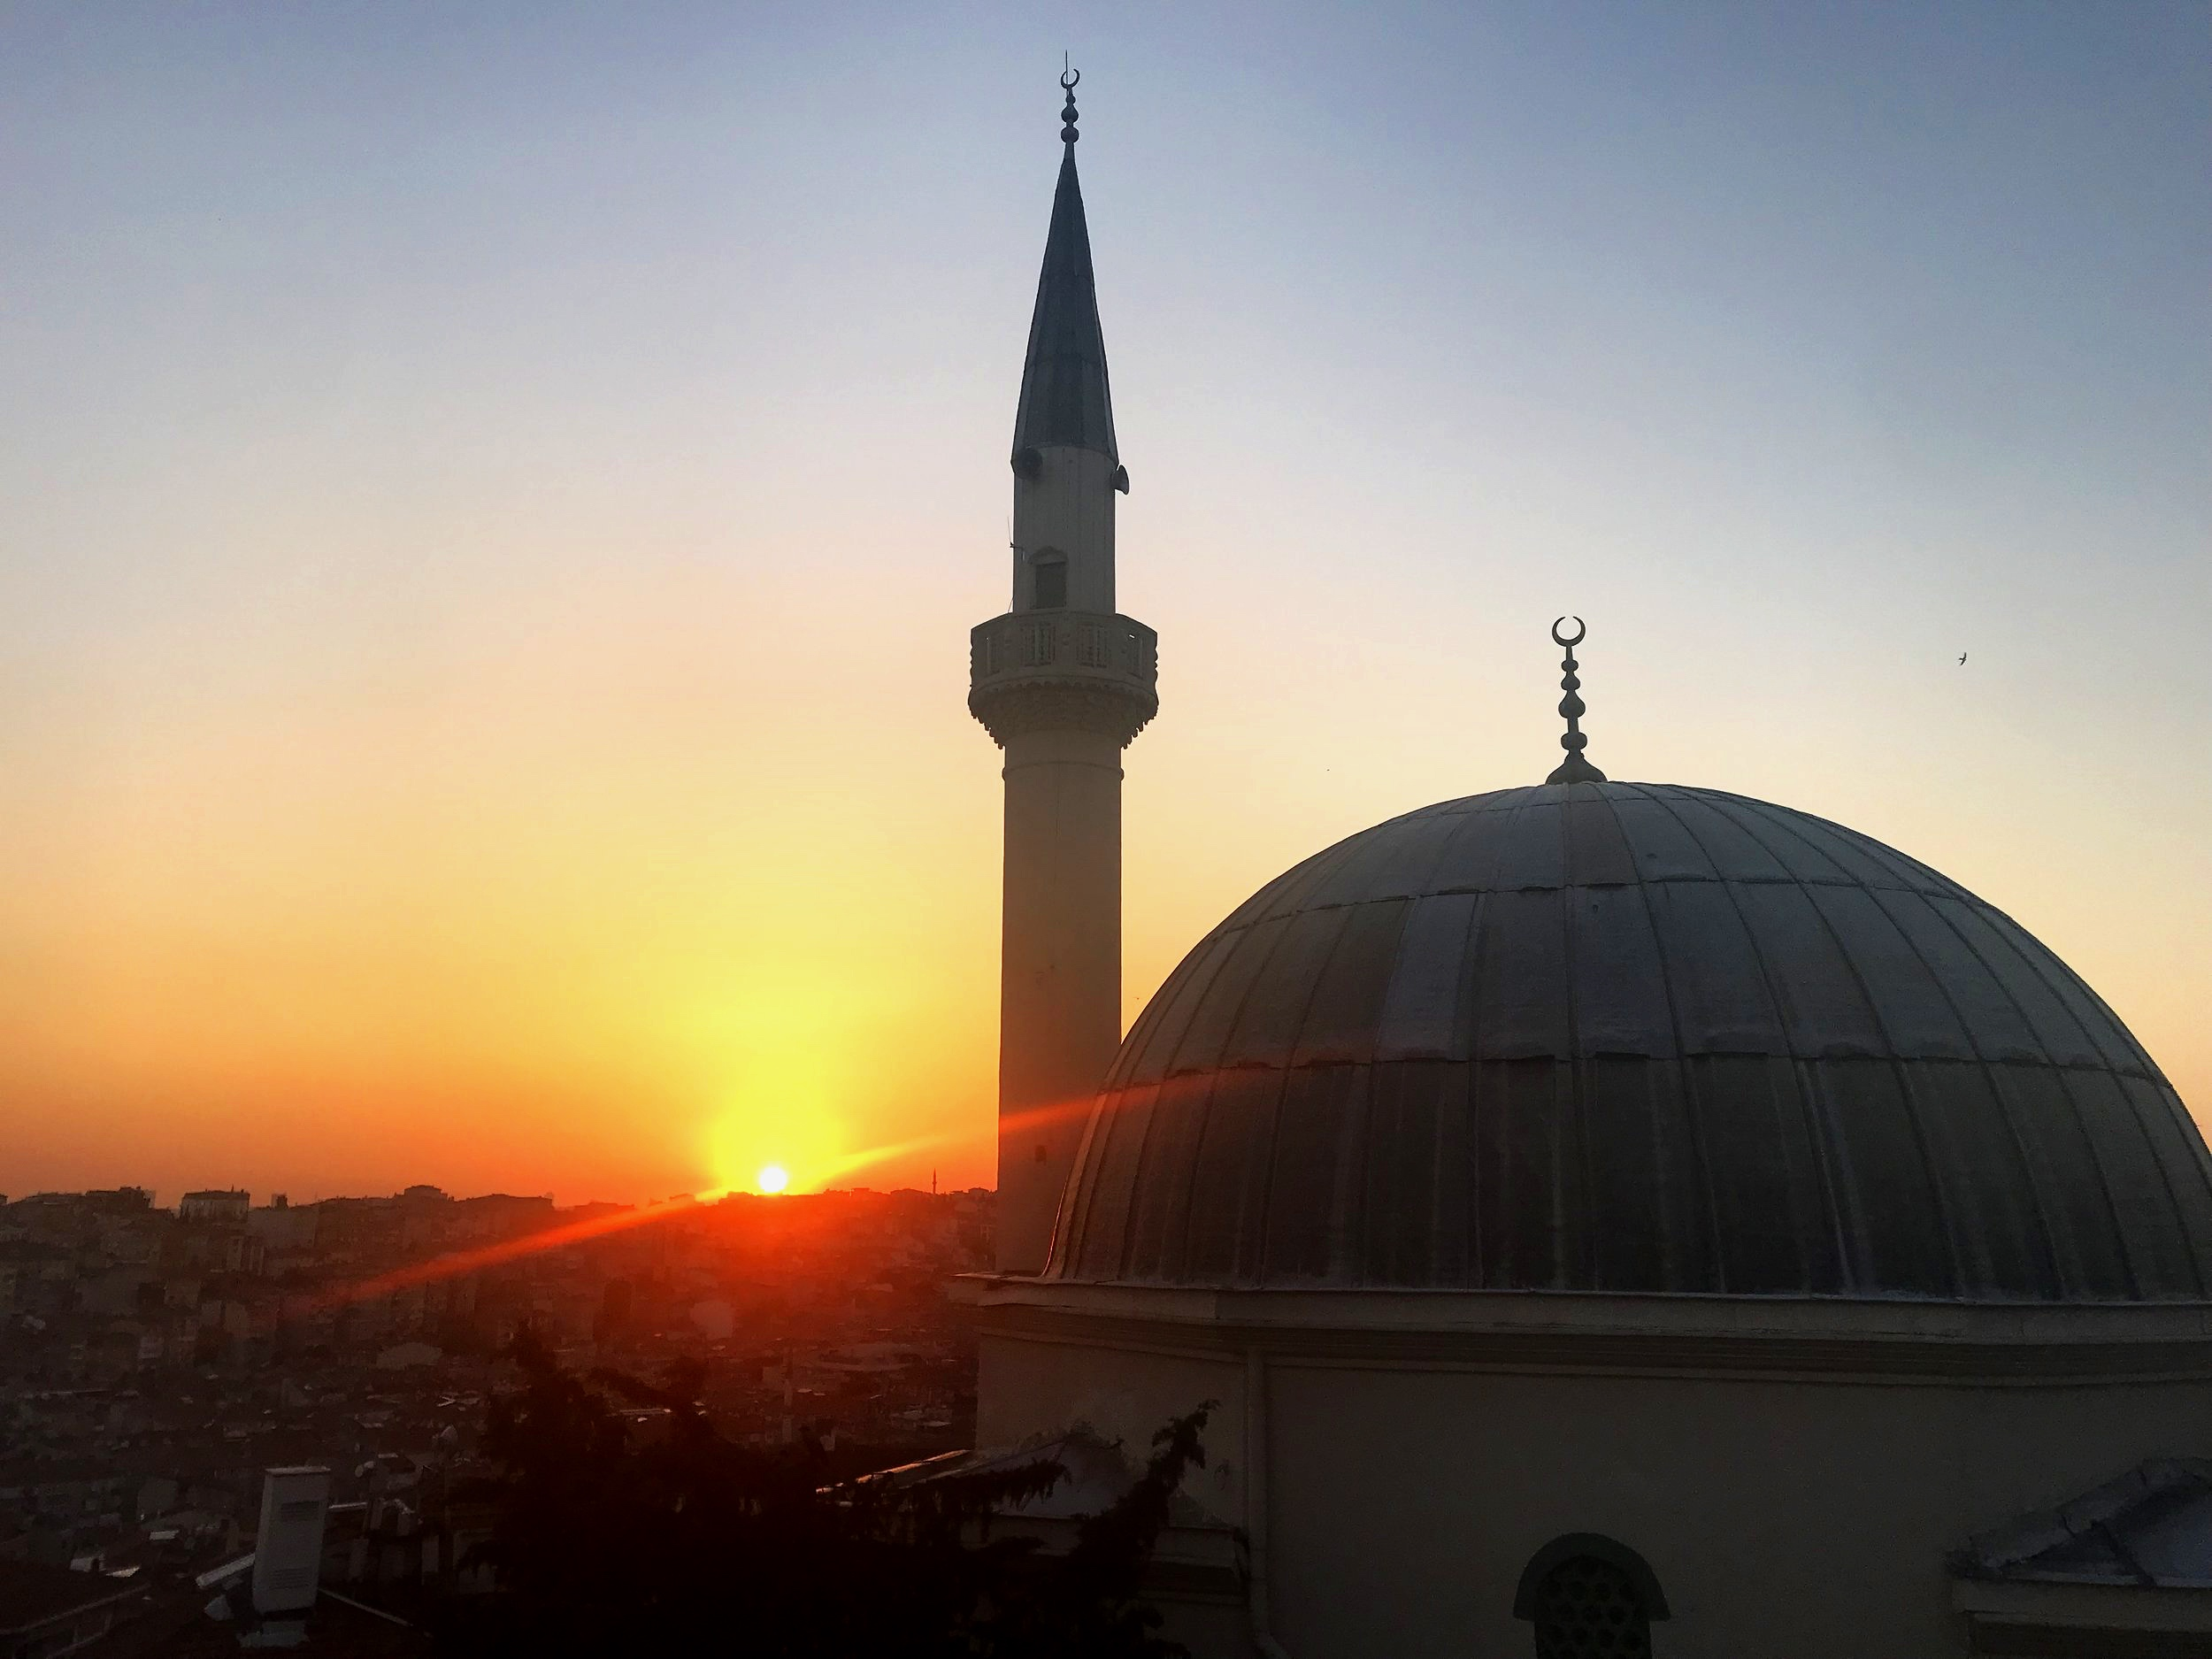 Our final sunset in Istanbul, which coincide with the end of the Holy Month of Ramadan this year!